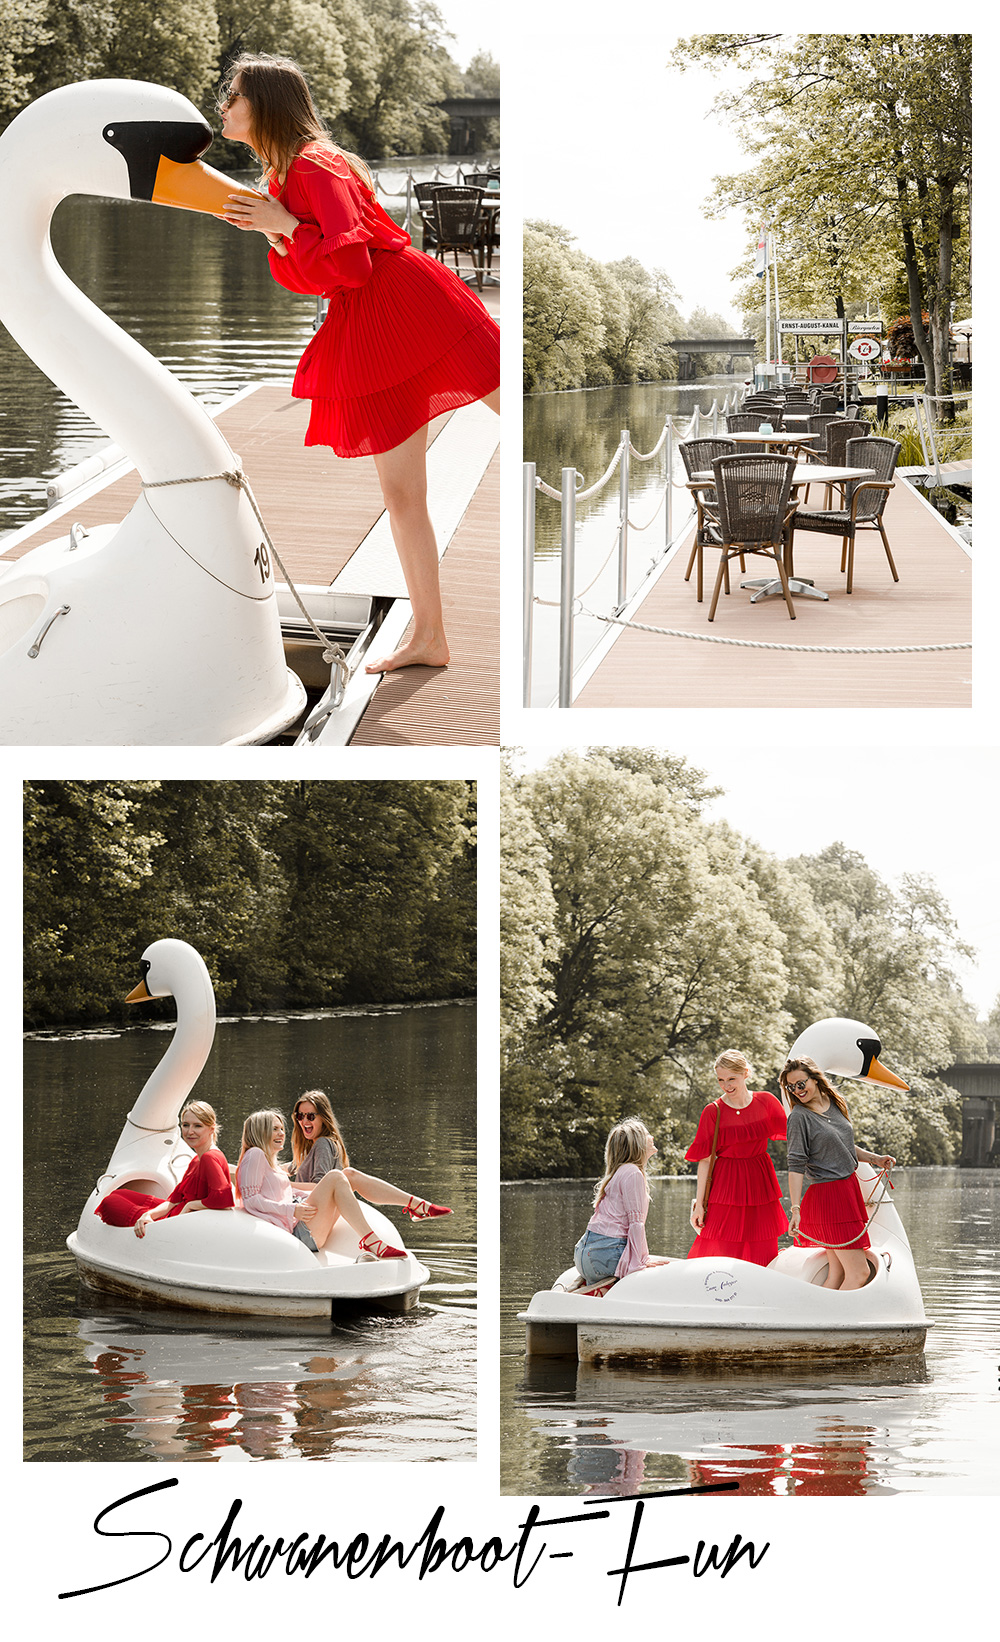 femtastics-mint-and-berry-hamburg-schwanenboot-fahren